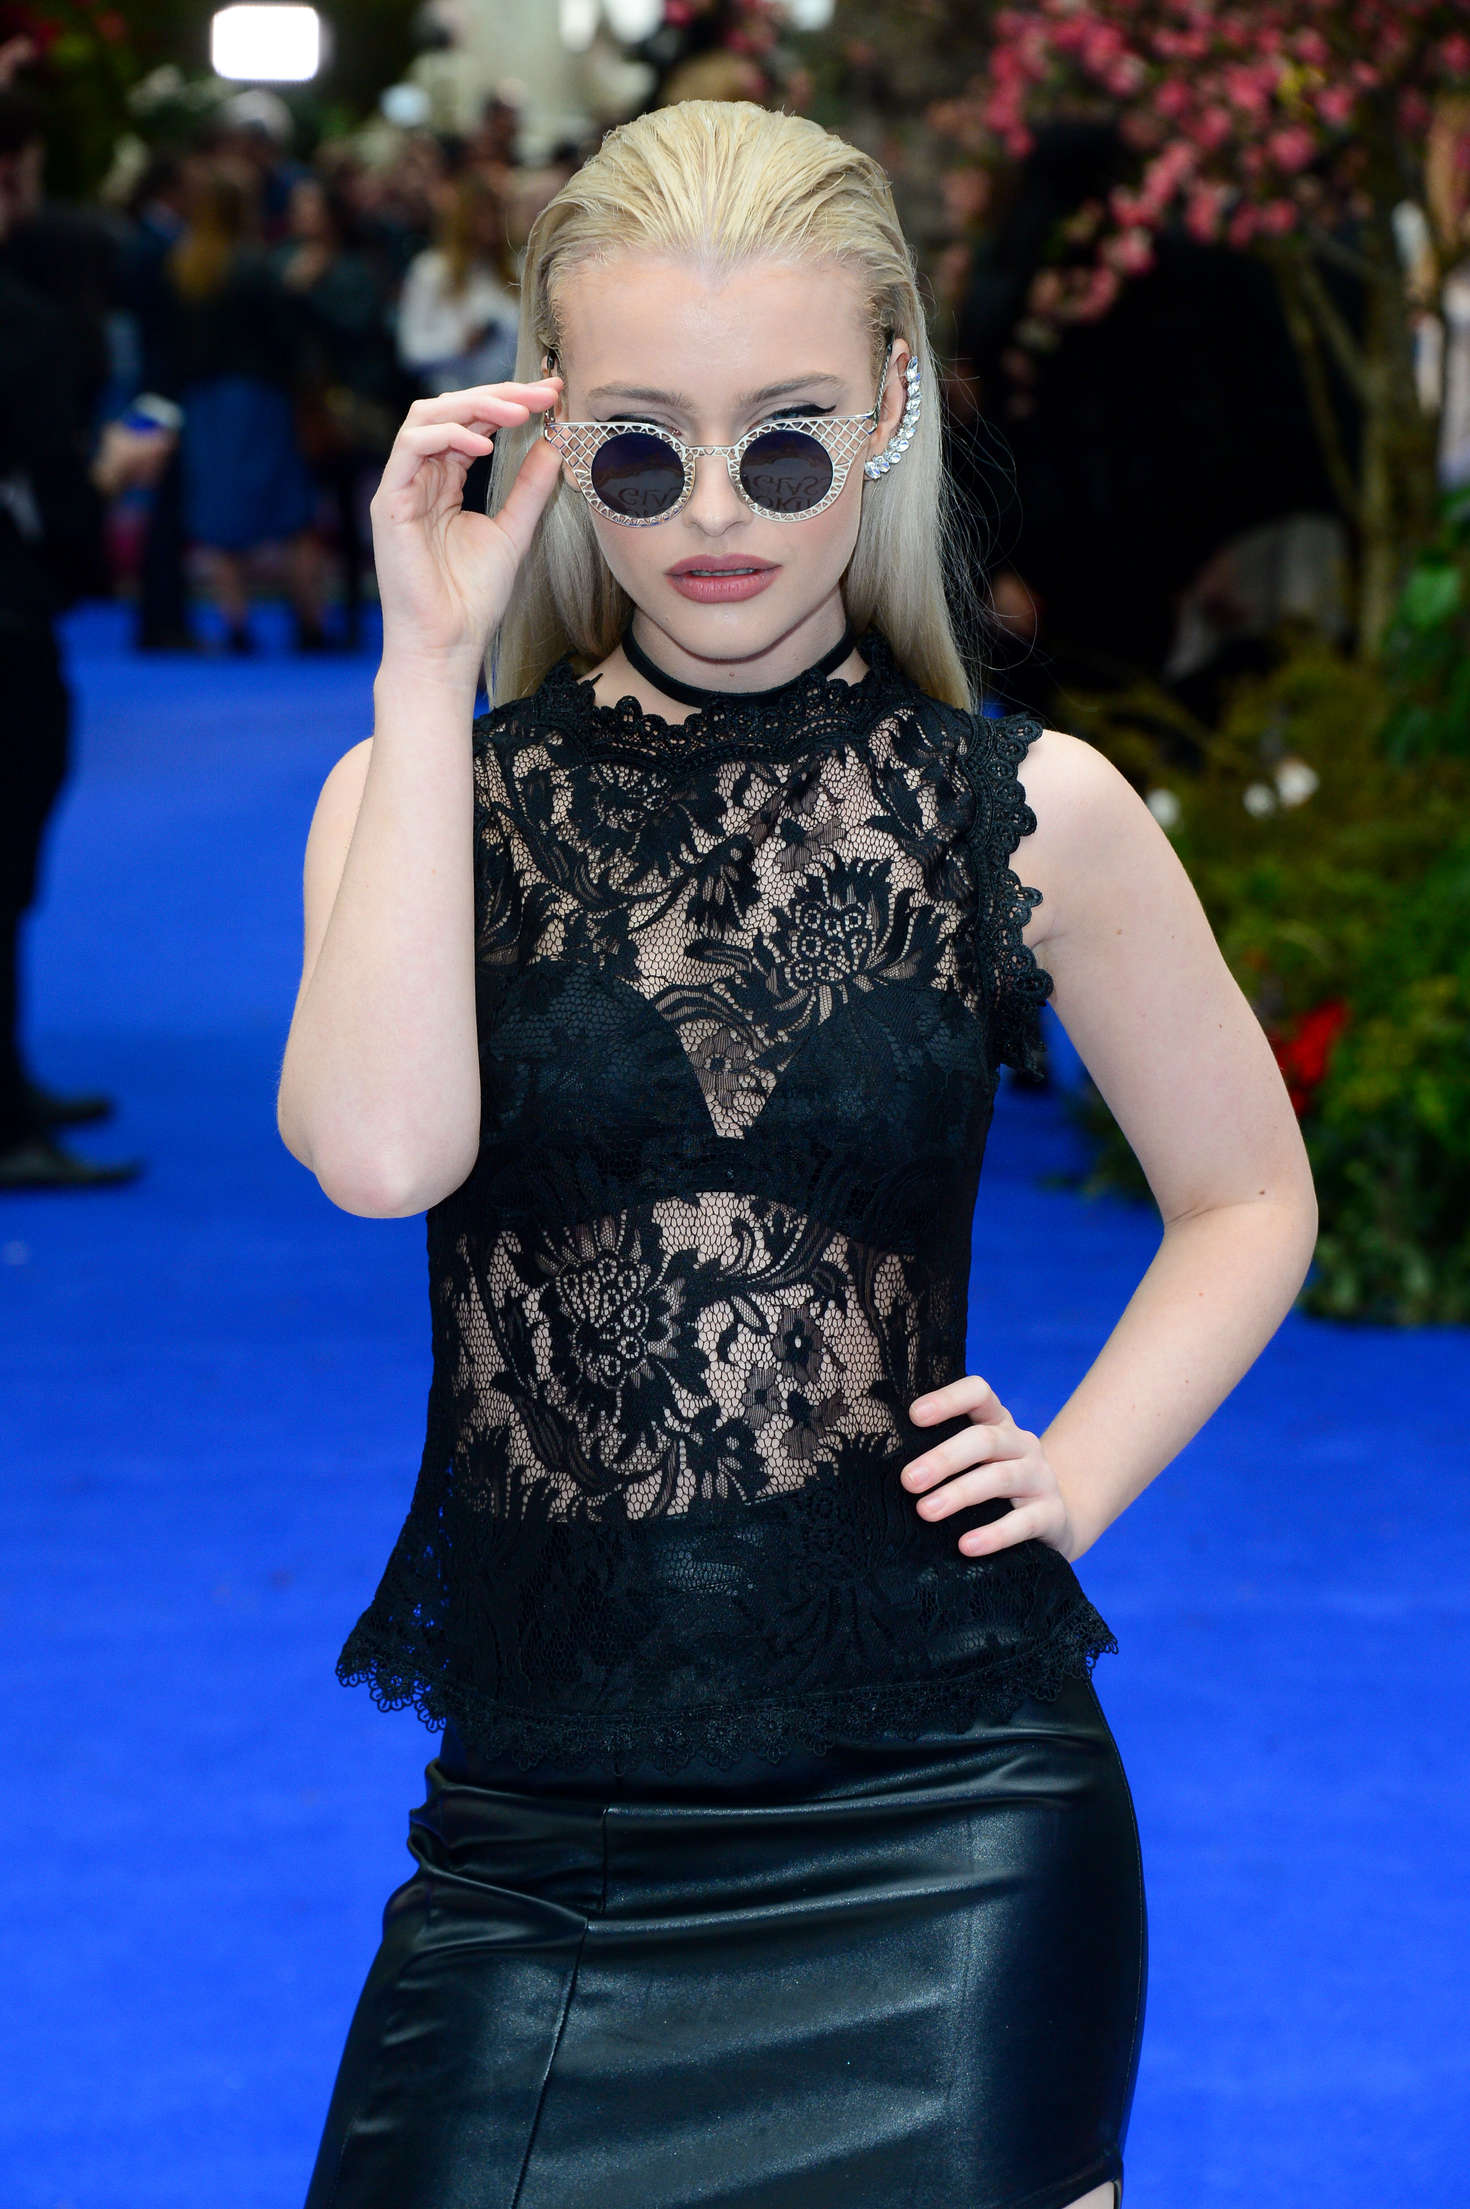 Alice Chater: Alice Through The Looking Glass Premiere -04 - Full Size